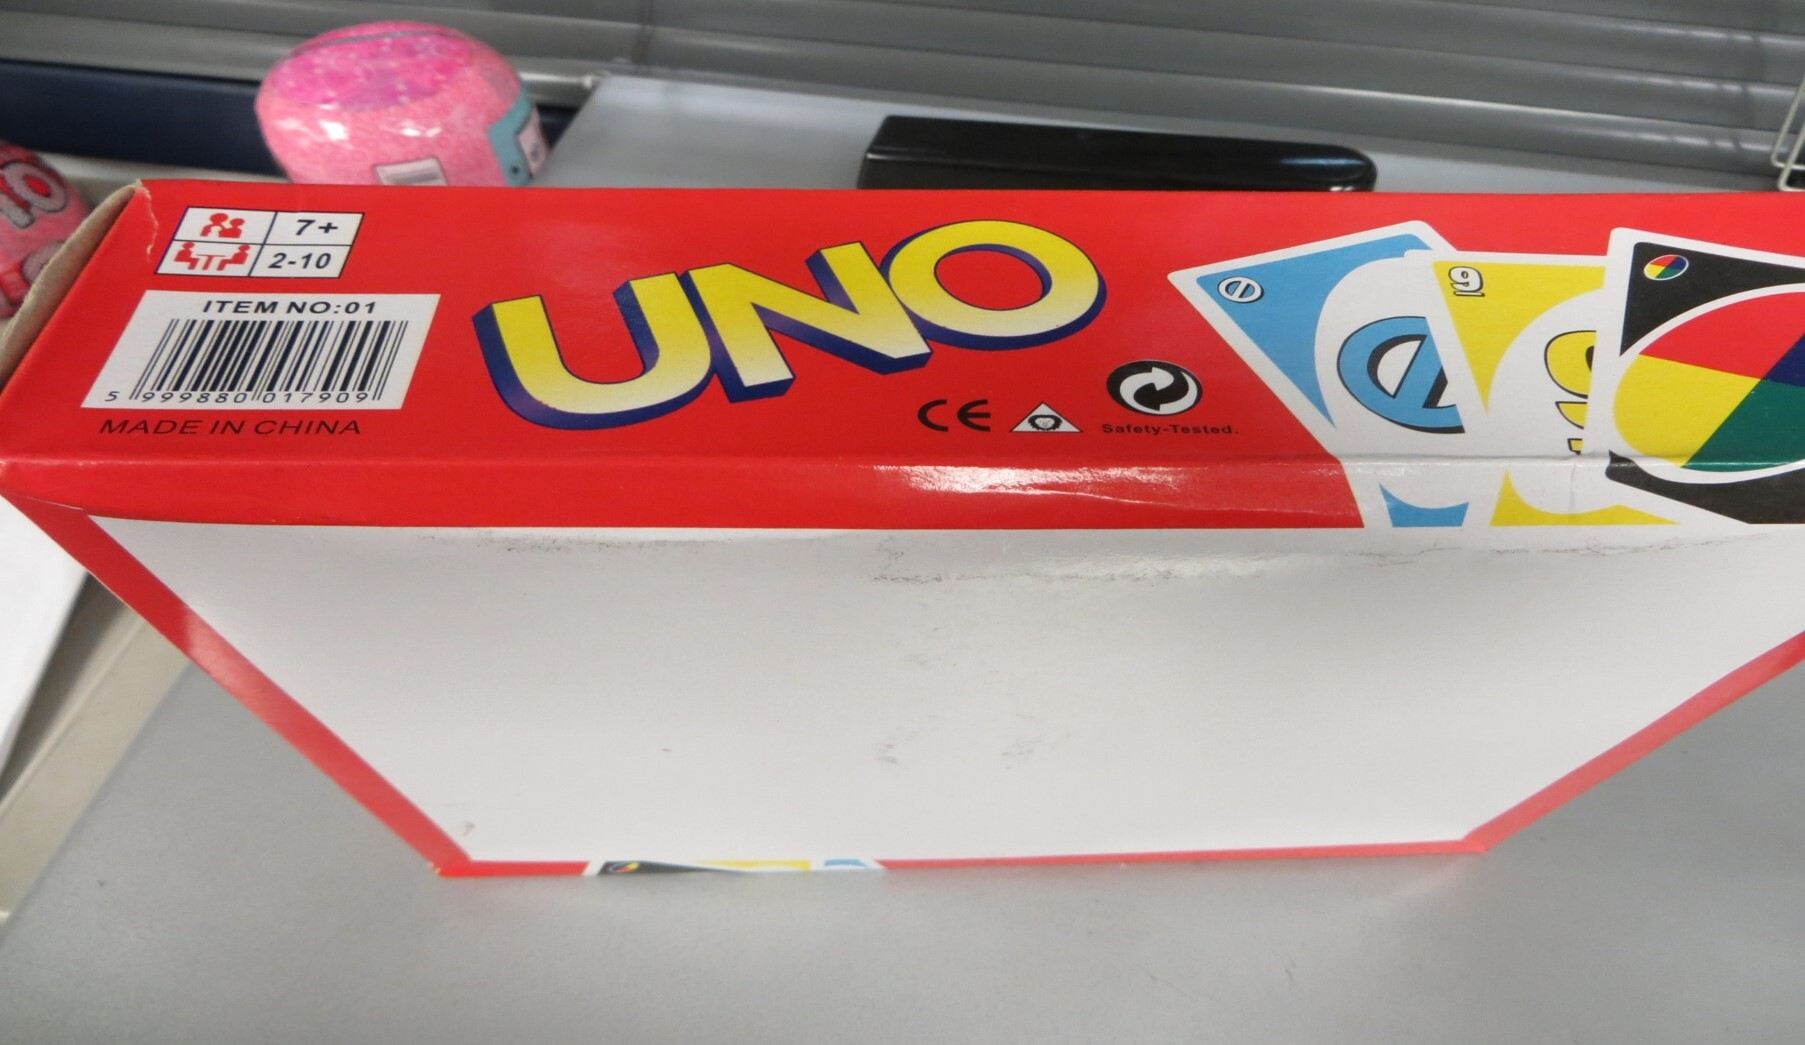 Nearly $1.3 Million in Counterfeit Toys, Including Fake UNO Cards, Seized in NY